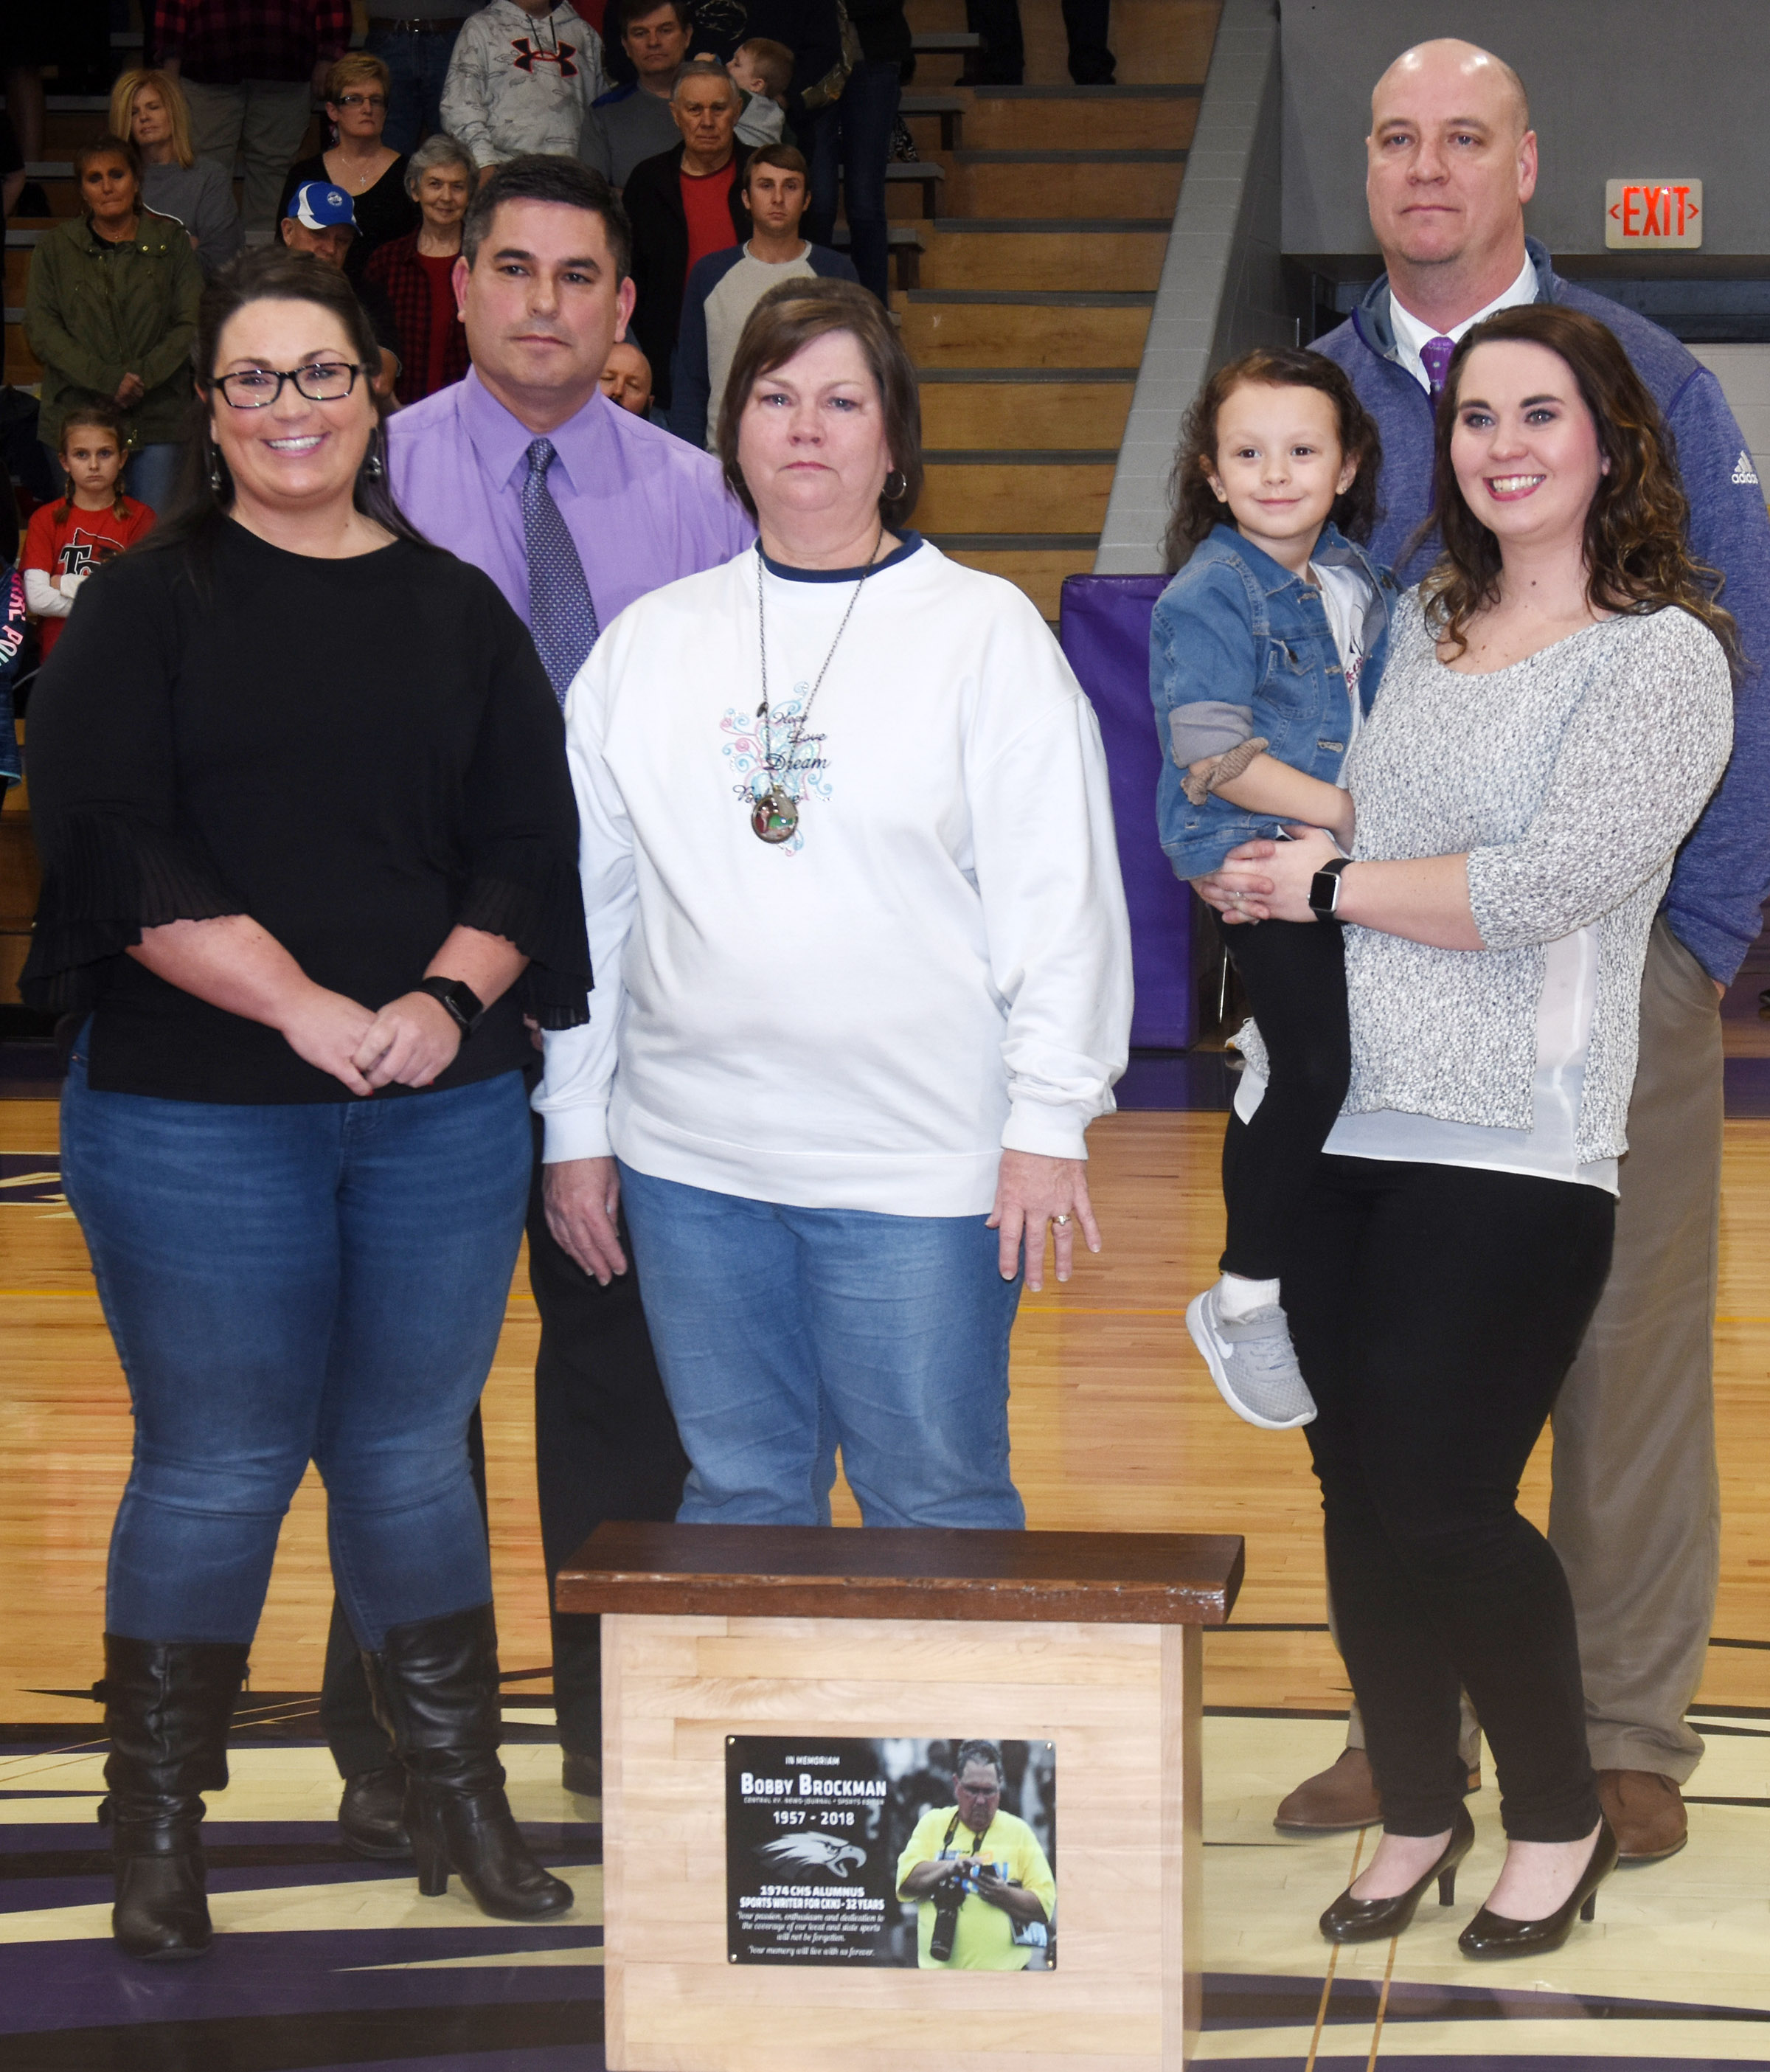 Bobby Brockman's family is presented a bench that was made out of his seat at the Campbellsville High School gymnasium. Pictured with CIS Superintendent Kirby Smith, in back, at left, and CHS Principal David Petett, are, from left, Brockman's daughter Rachel, his wife Sonja and his daughter Melanie holding his granddaughter Eden. Absent from the photo is Brockman's daughter Savanna, who is a sophomore at CHS.